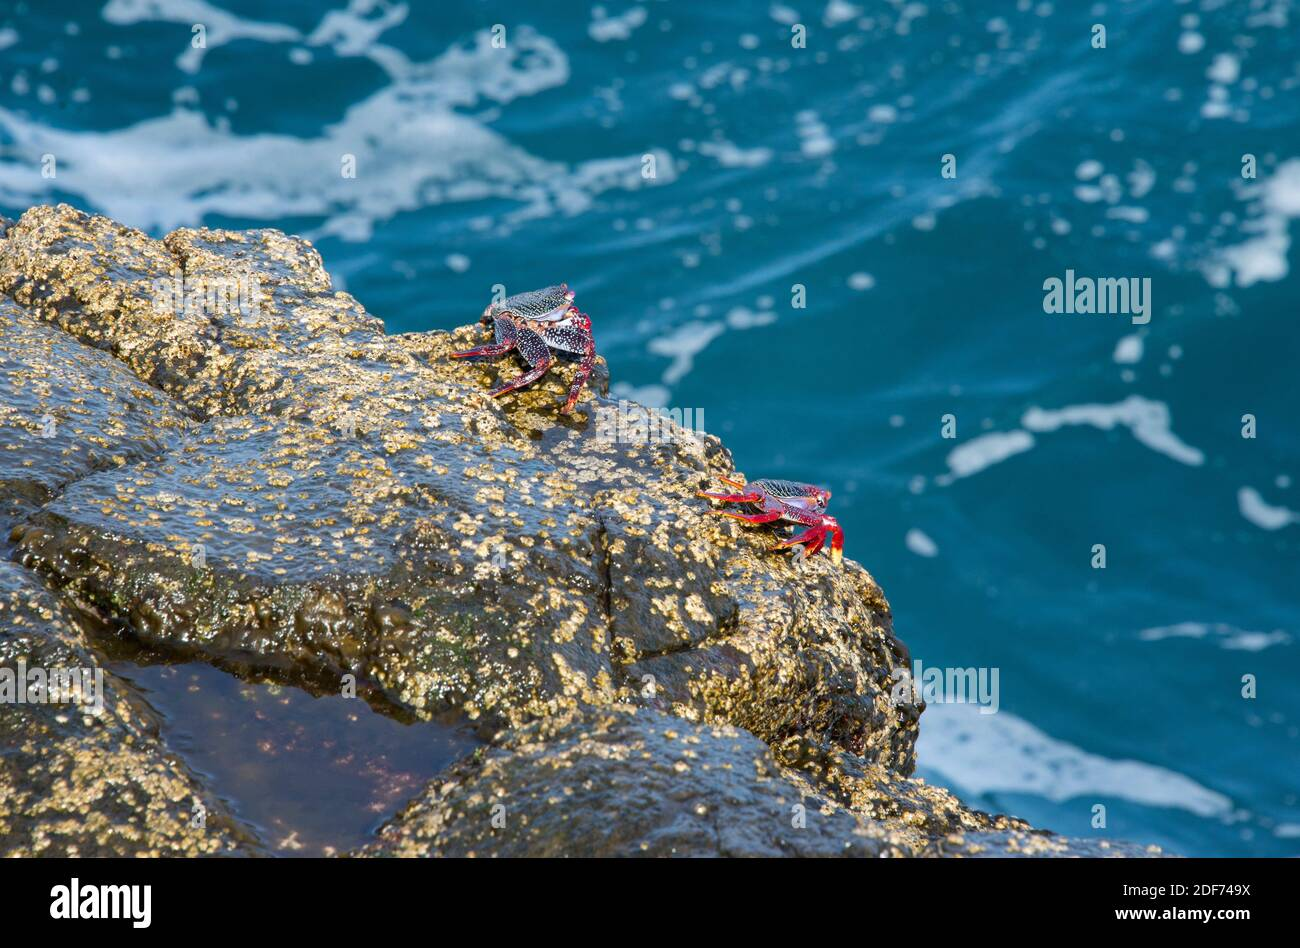 Cangrejo rojo (Grapsus adscensionis) is a crab native to Macaronesia Islands. This photo was taken in La Palma Island, Canary Islands, Spain. Stock Photo